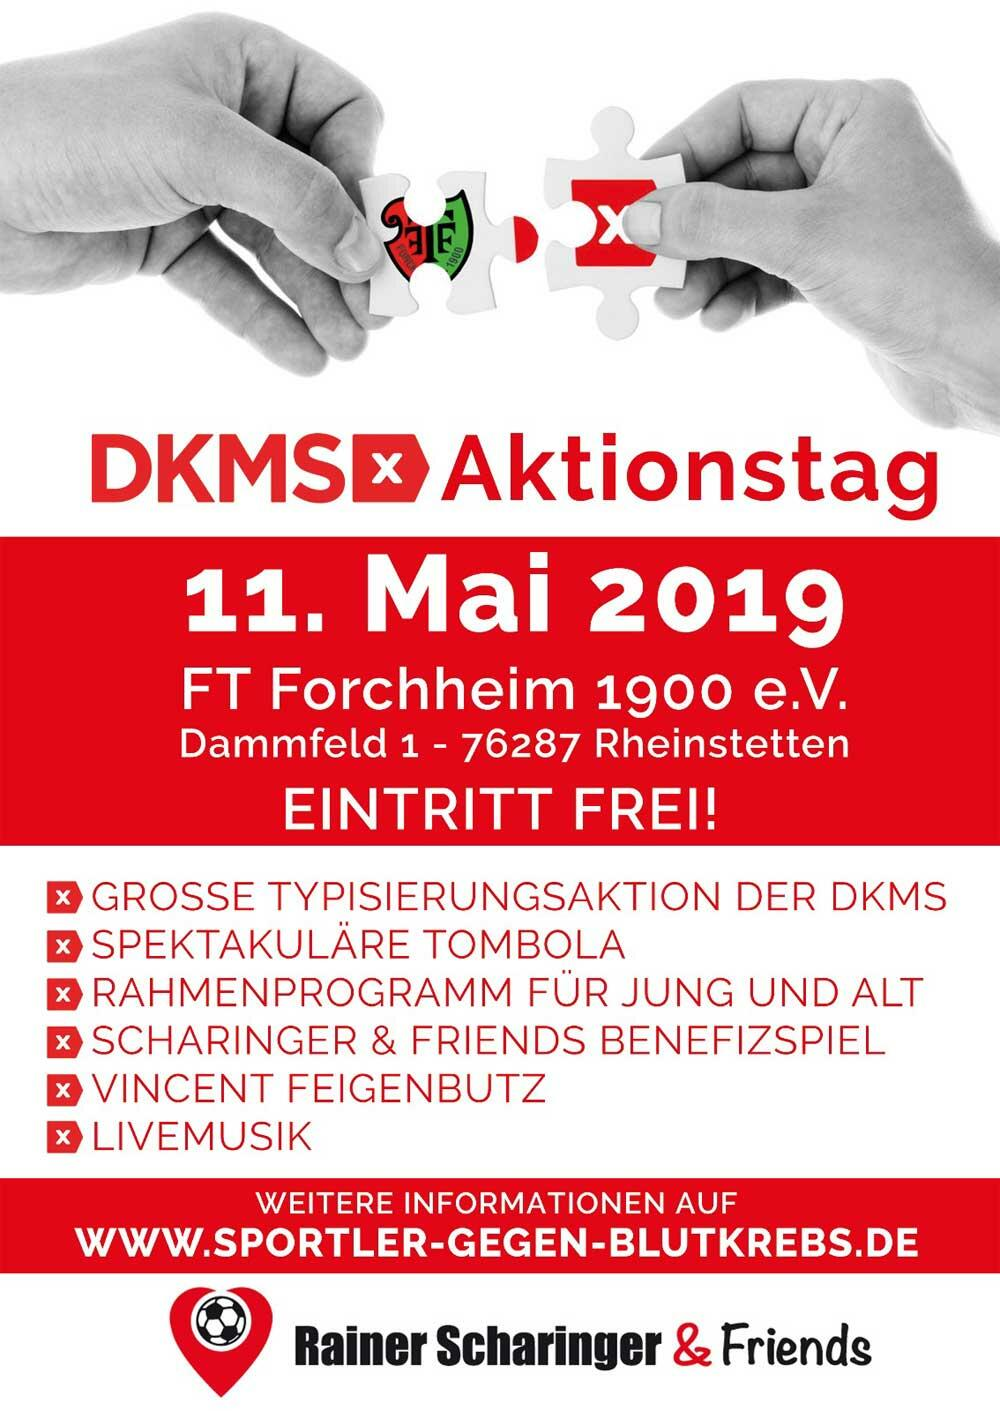 DKMS Aktionstag bei FT Forchheim 1900 e.V.